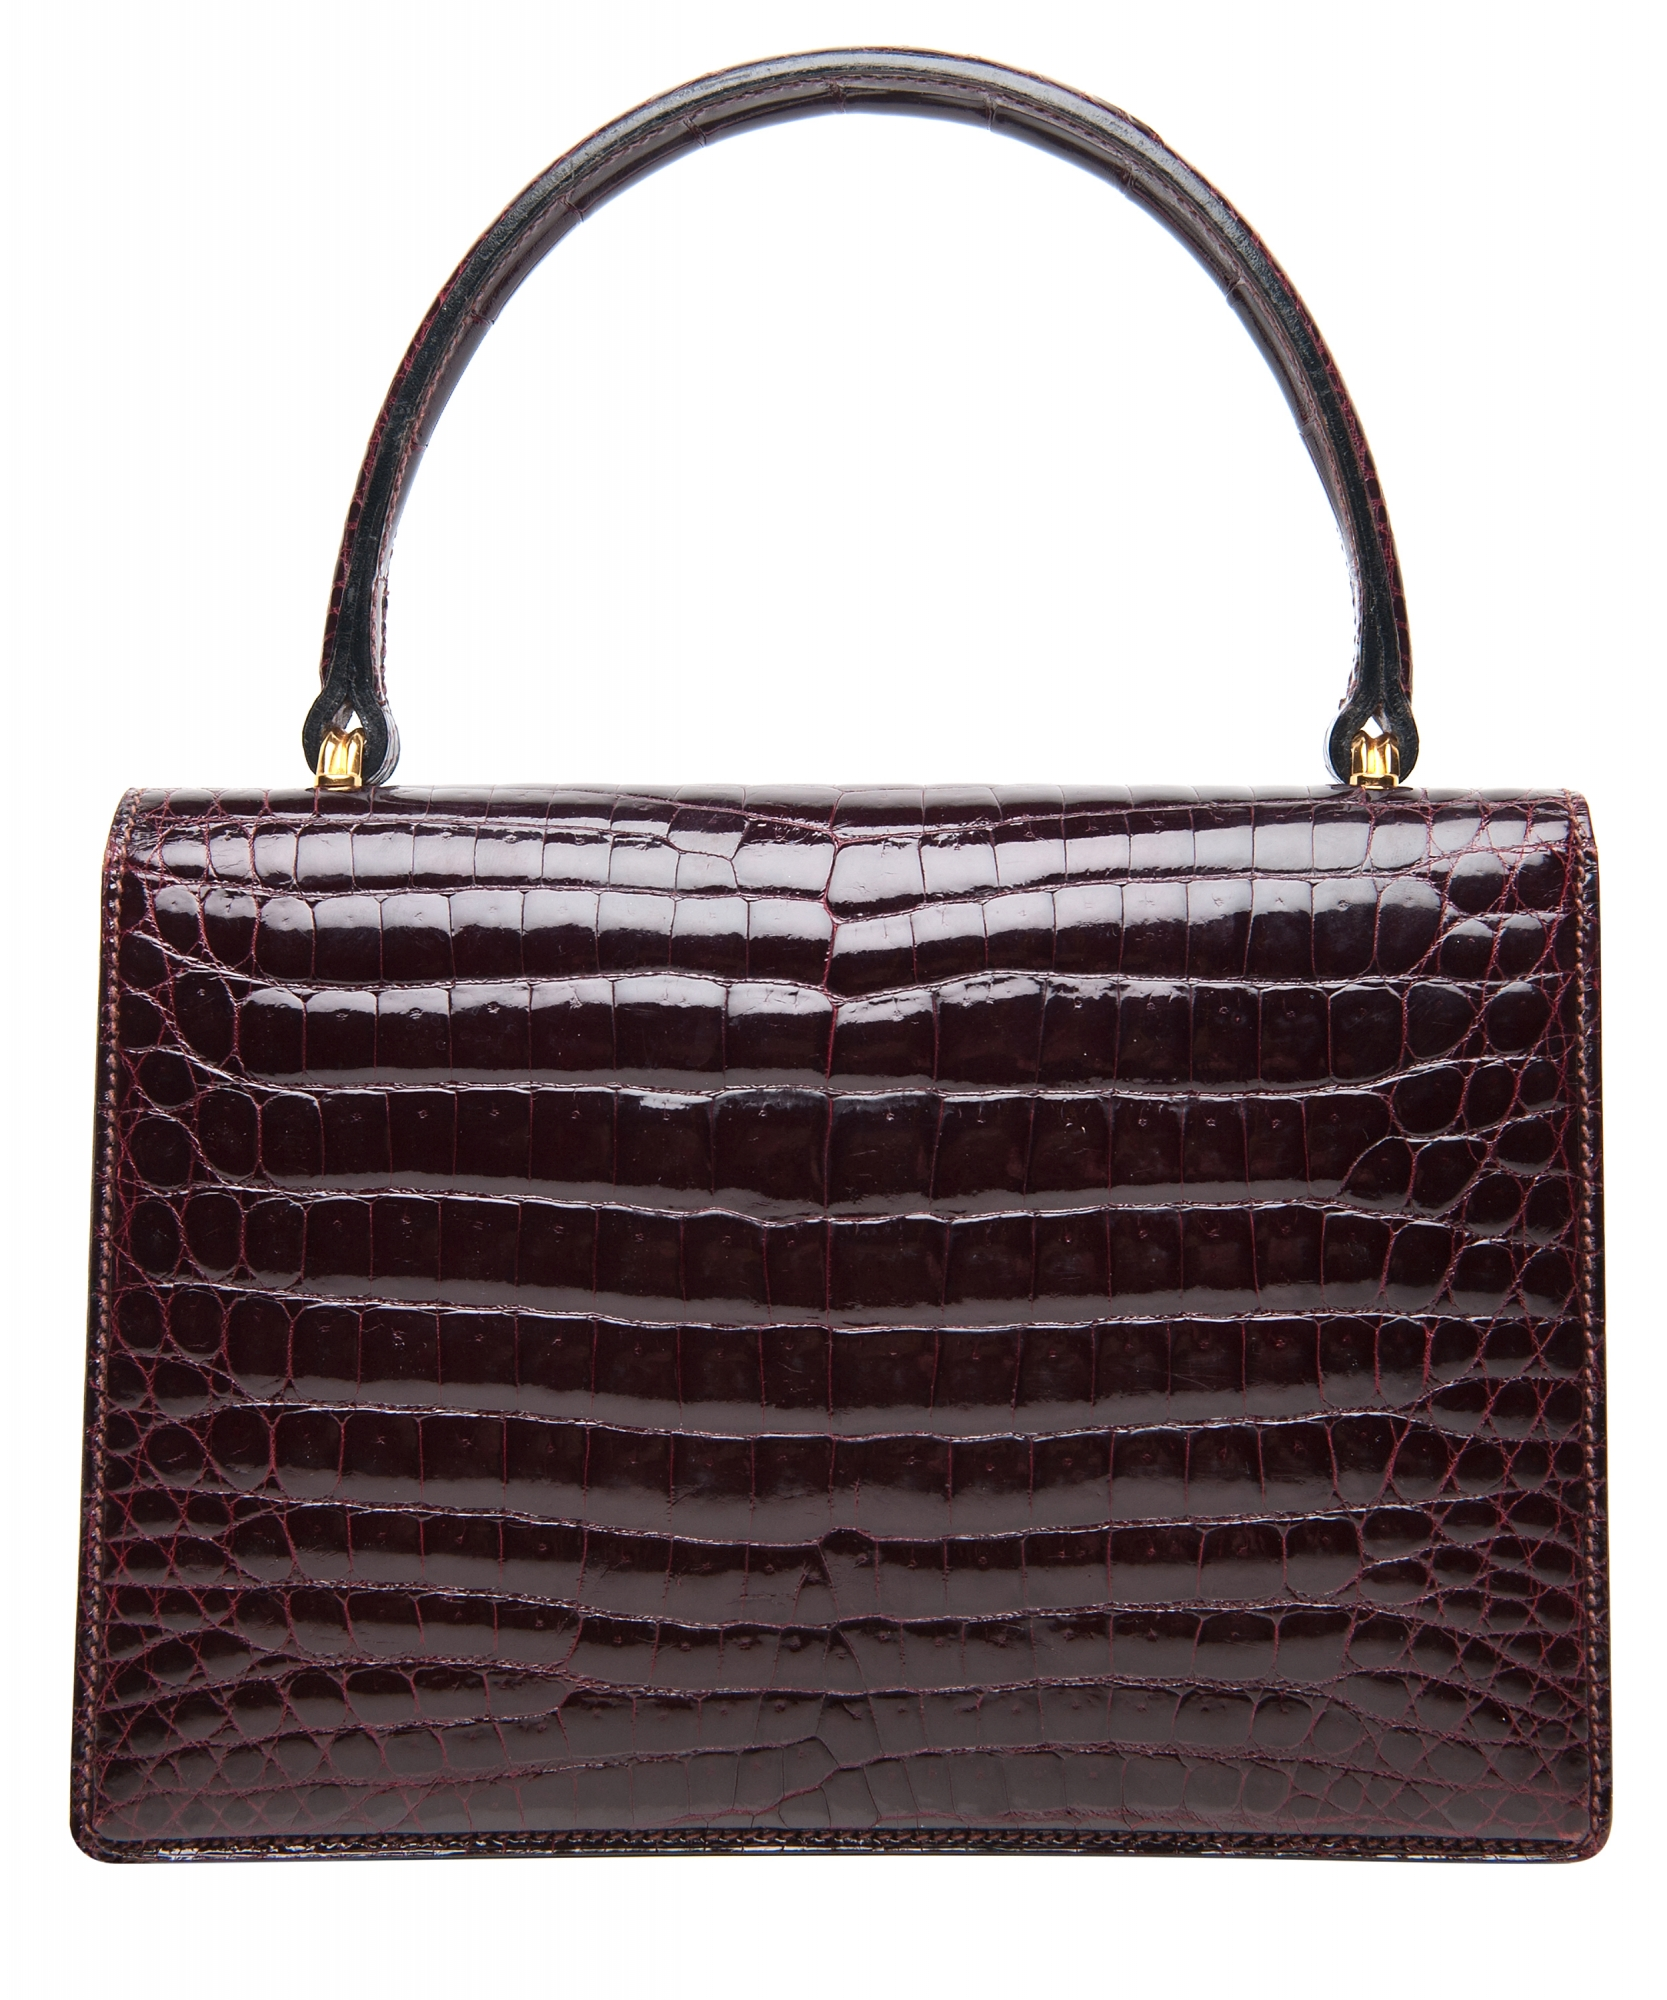 2fa38c05292f45 Vintage Gucci Crocodile Top Handle Bag | La Doyenne